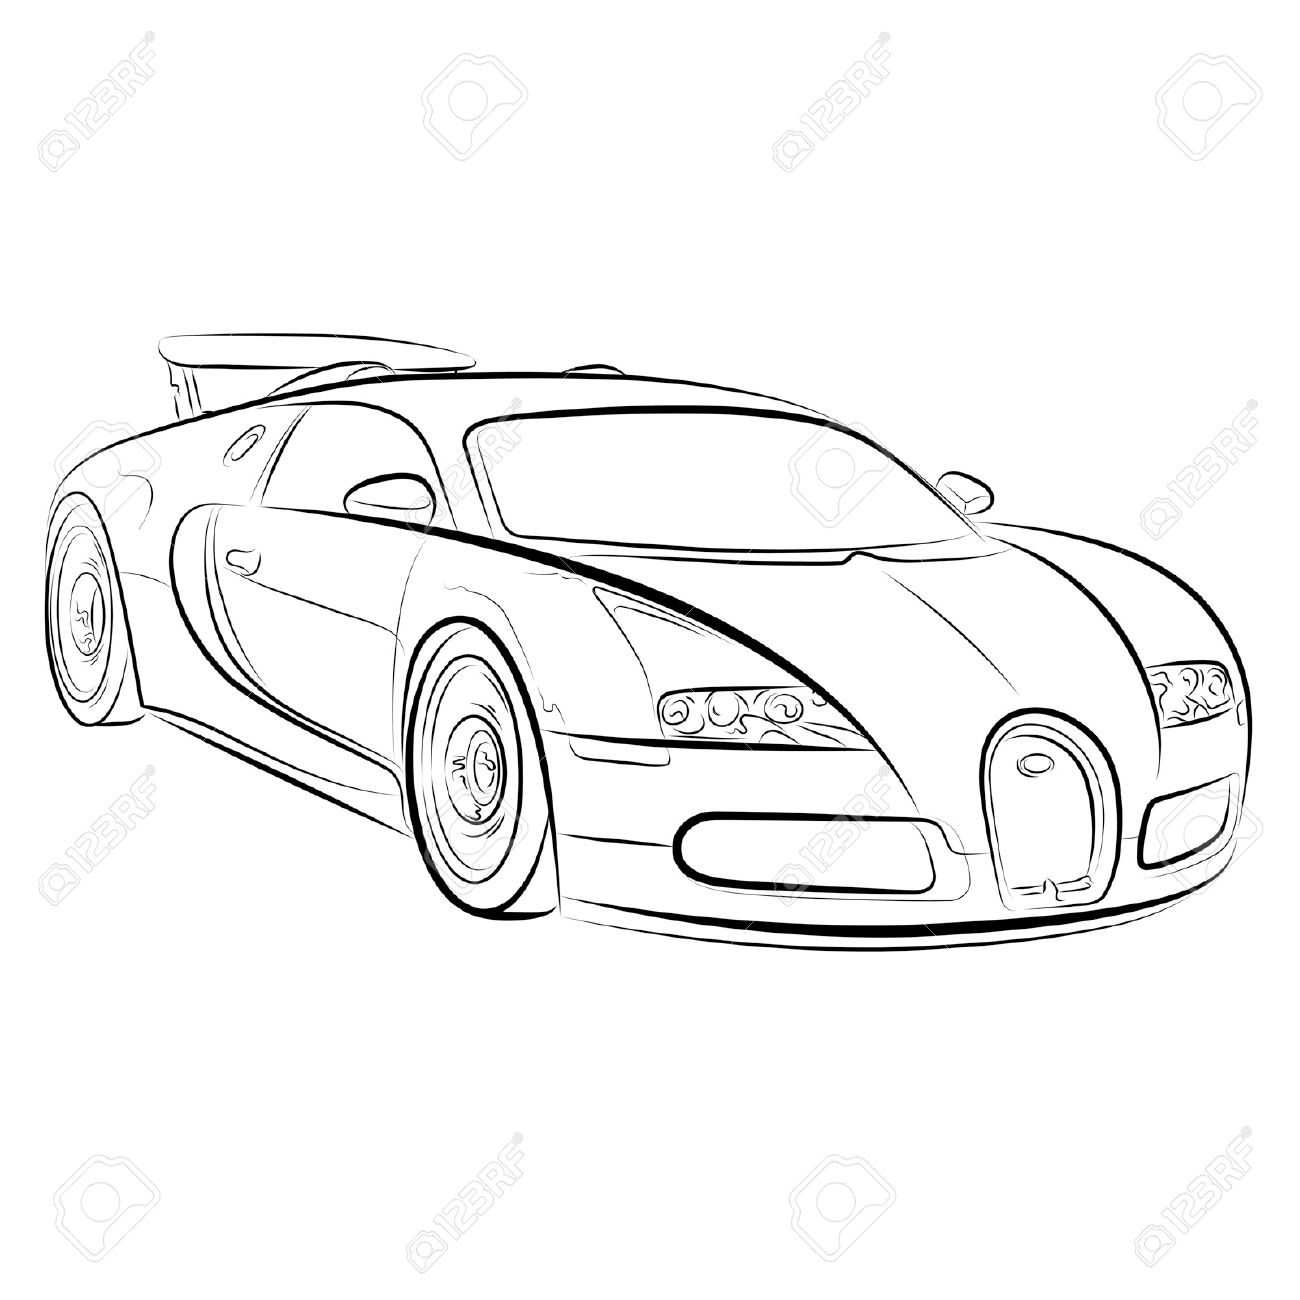 1300x1300 Drawing Of The Expensive Car. Royalty Free Cliparts, Vectors,